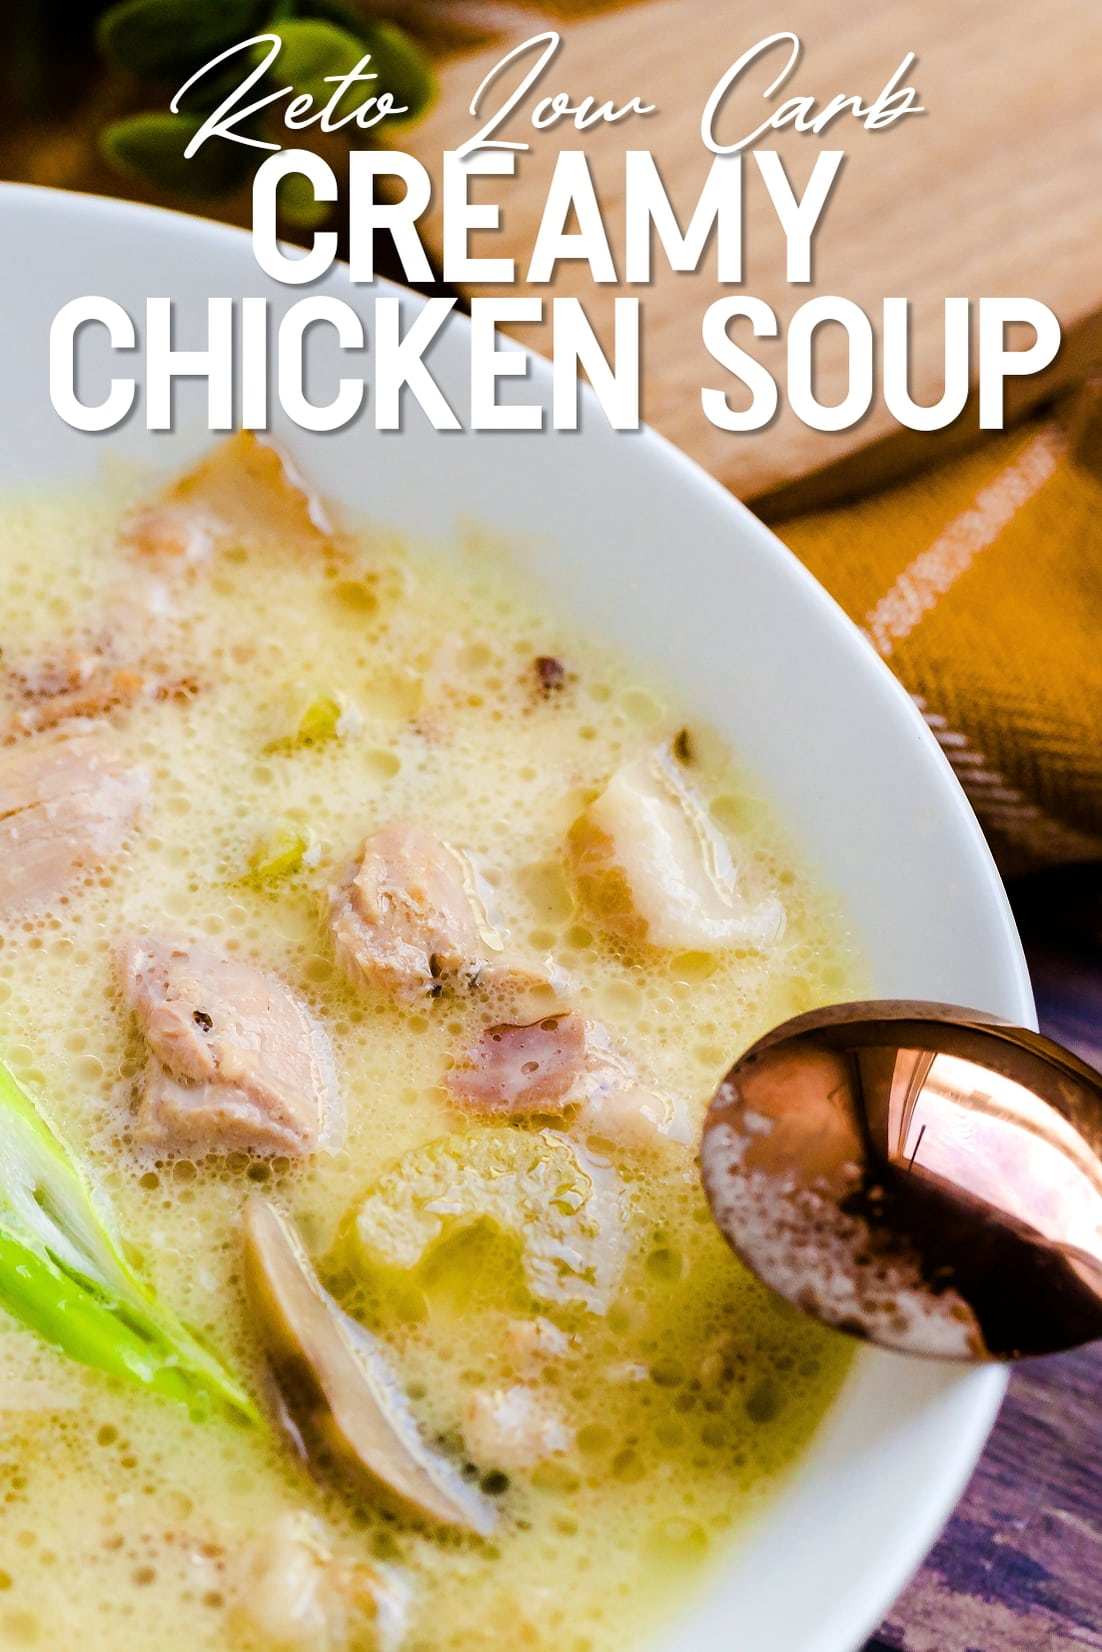 Keto Creamy Chicken Soup served in a white bowl with a golden spoon